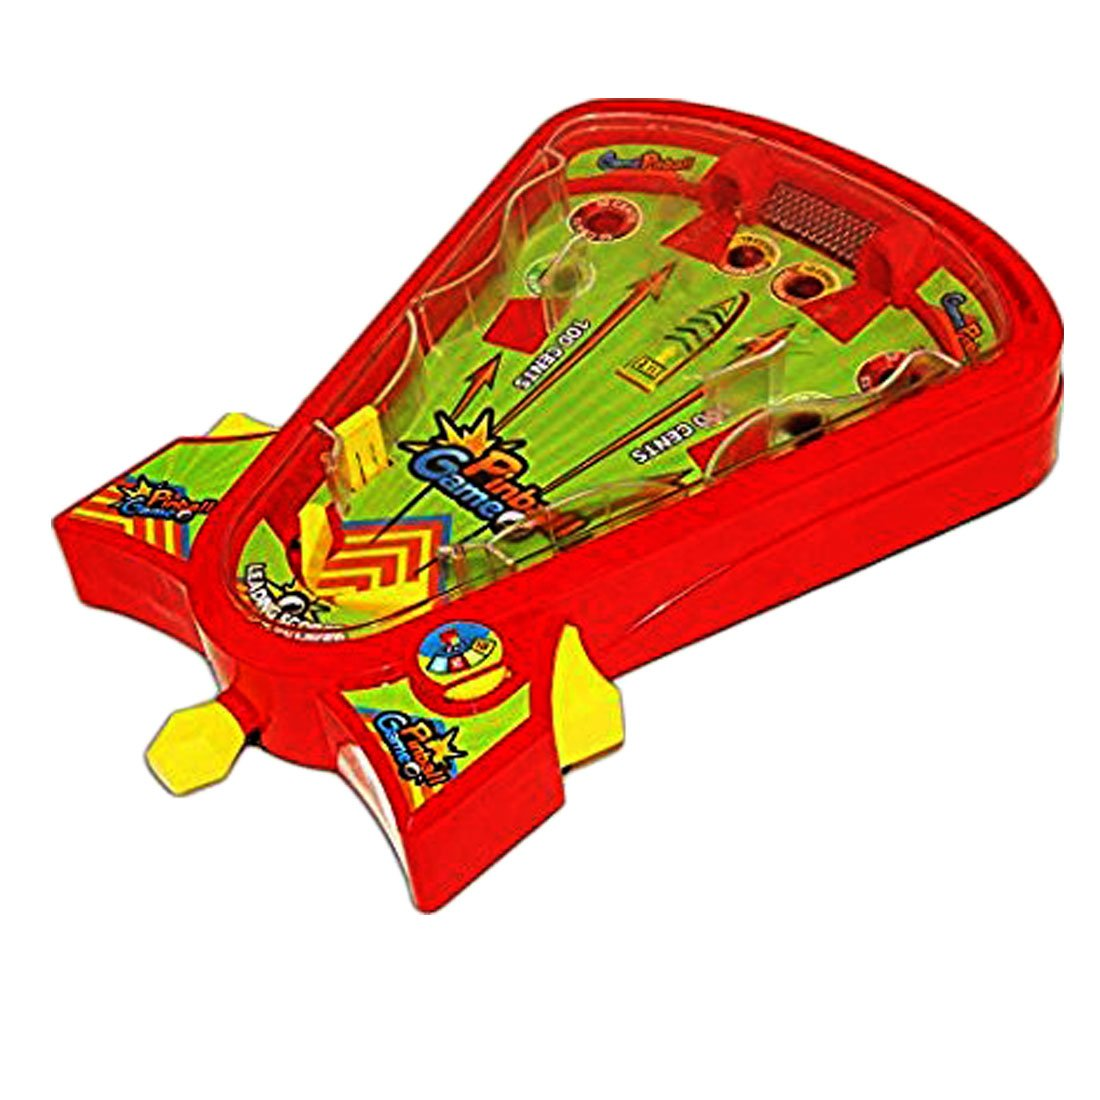 Table Top Pinball Game - Desktop Arcade Pin Ball Board Game Ages 5 up | Portable Tabletop Single Player Pinball Skills Game - Classic Edition by Toy Cubby